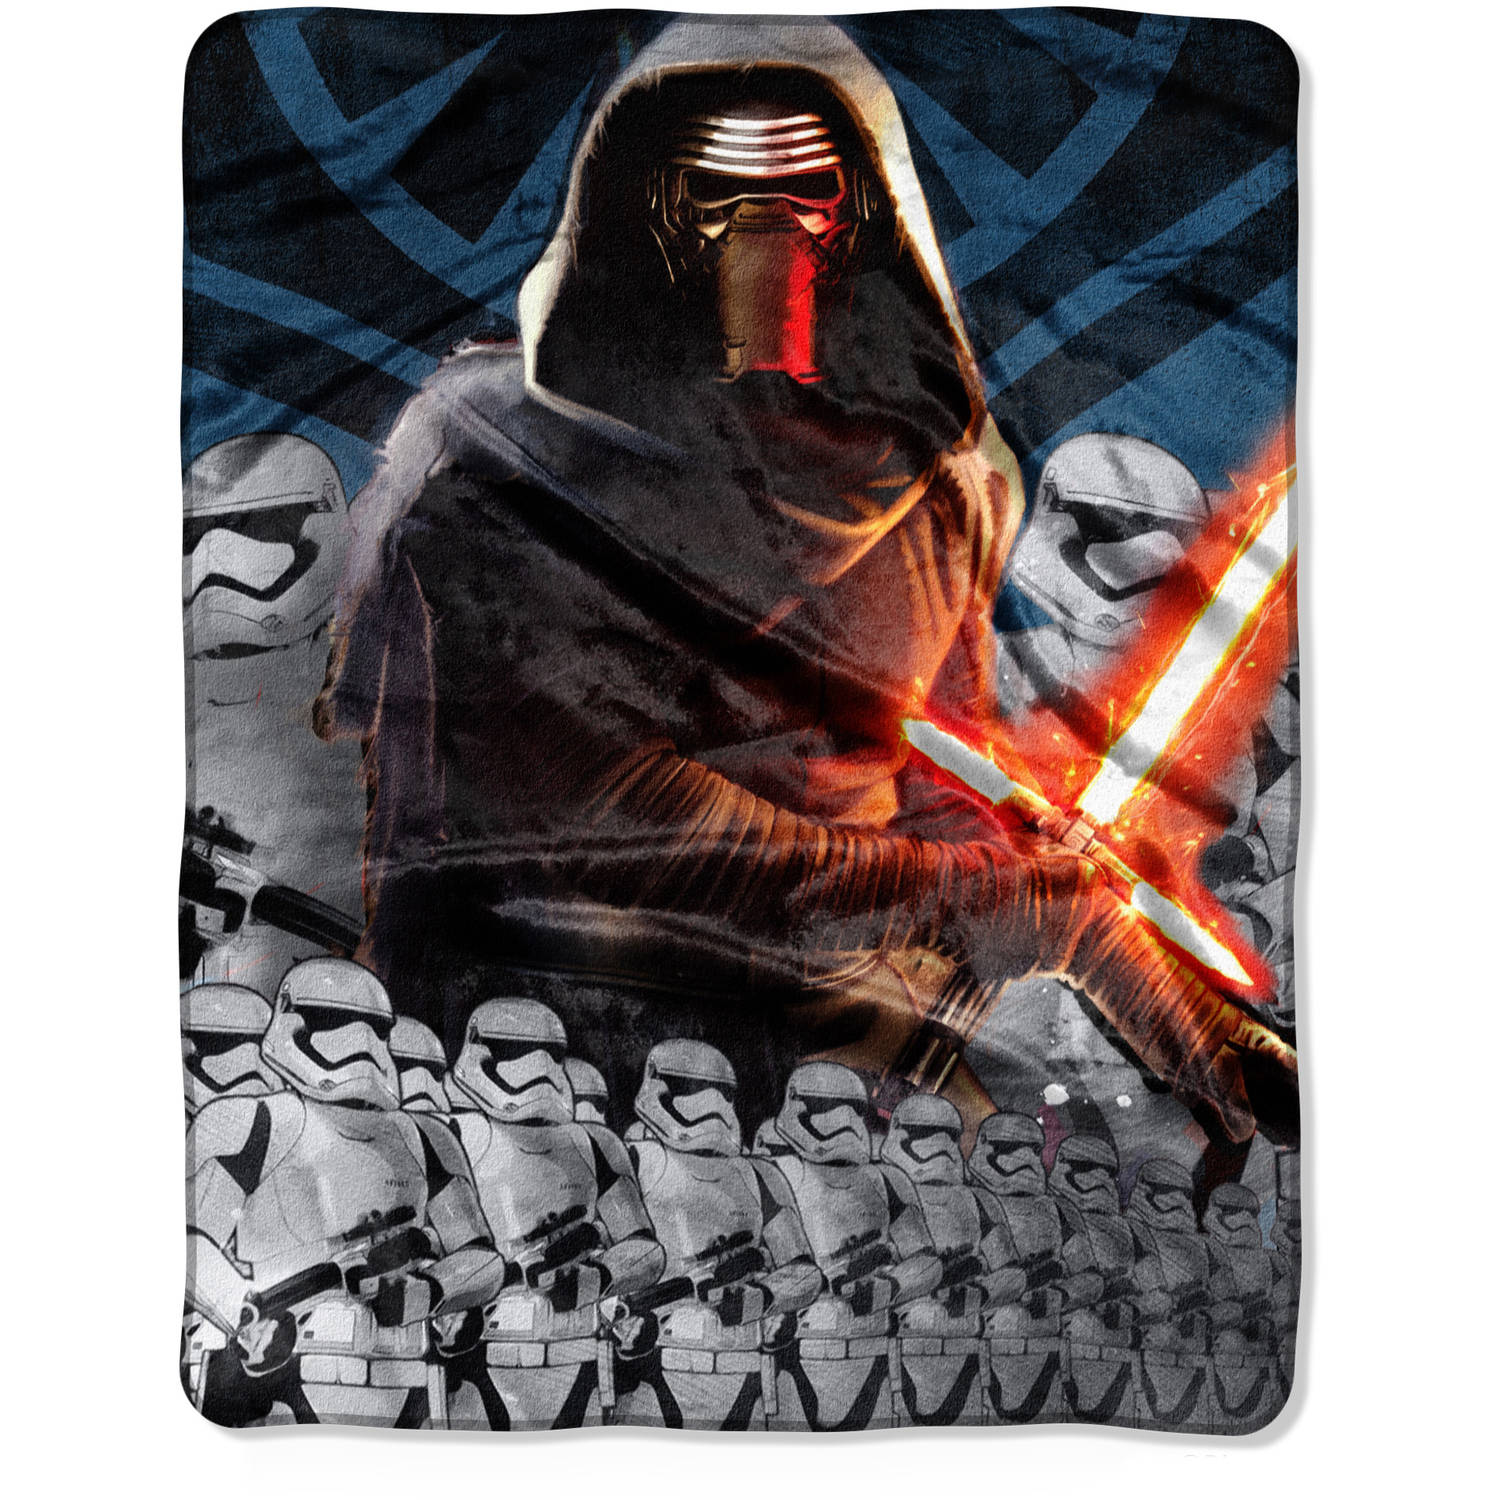 "Star Wars Episode VII: The Force Awakens ""Lead Force"" 40"" x 50"" Silk Touch Throw"